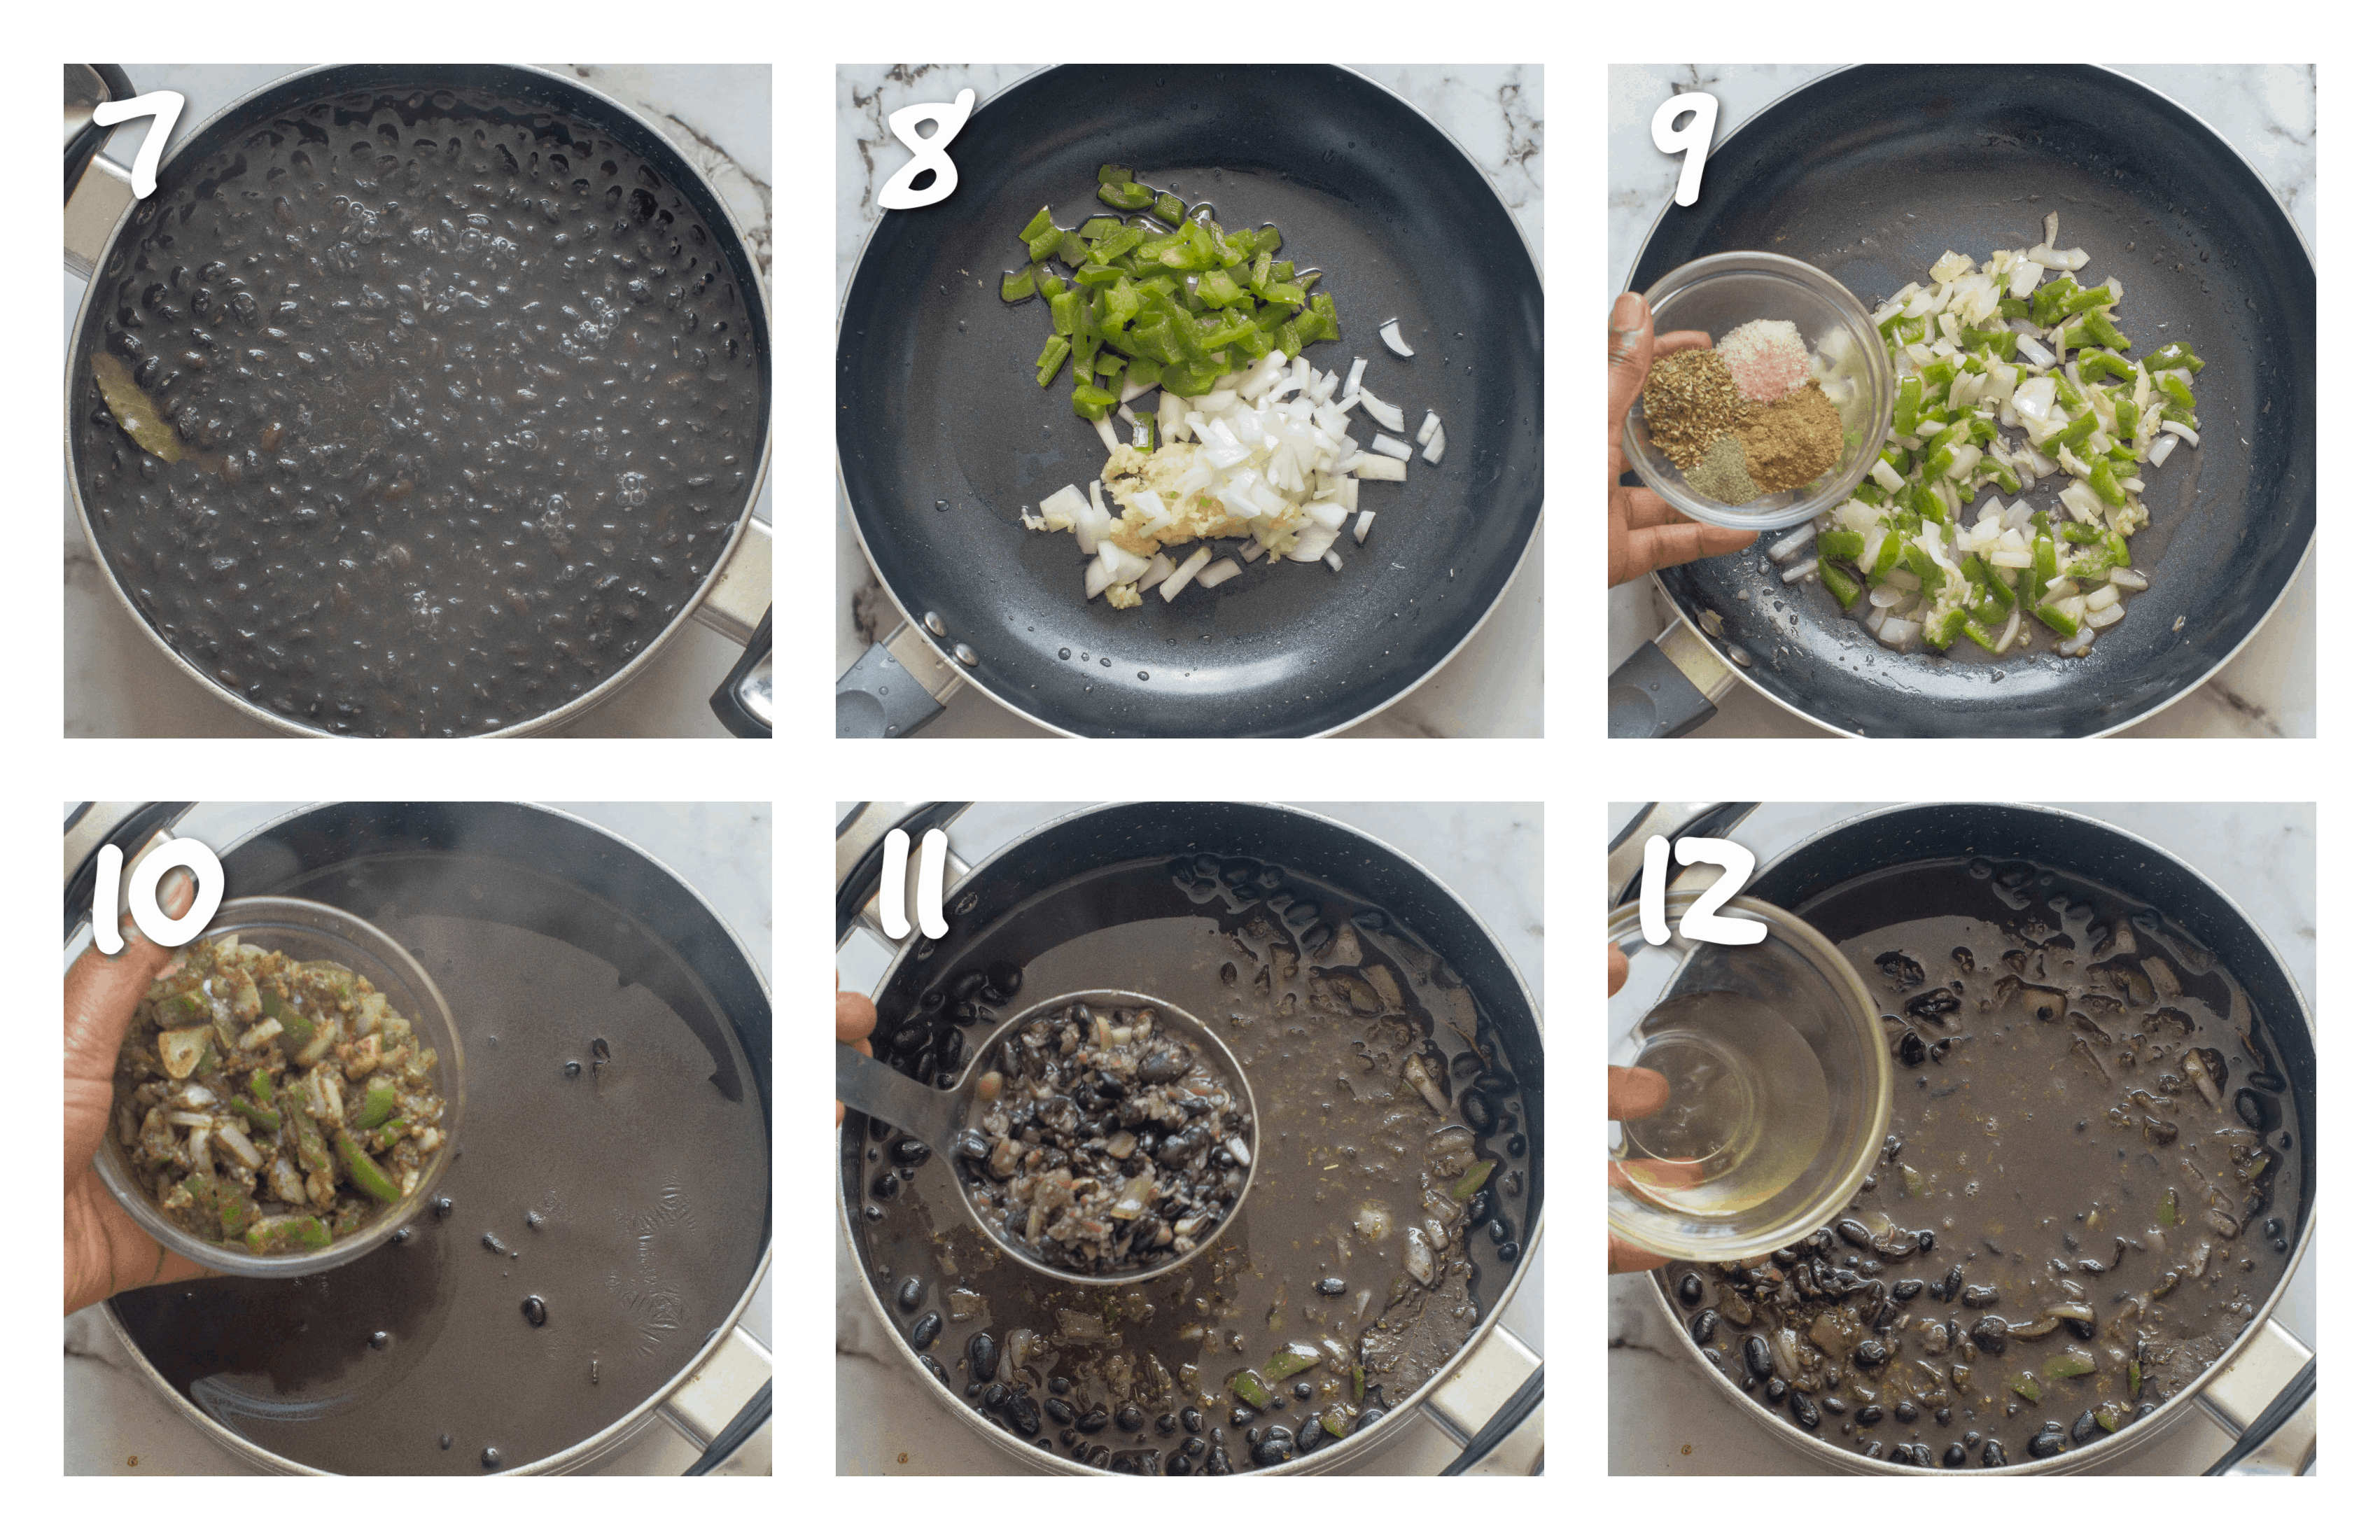 steps7-12 making the sofrito and cooking the black beans